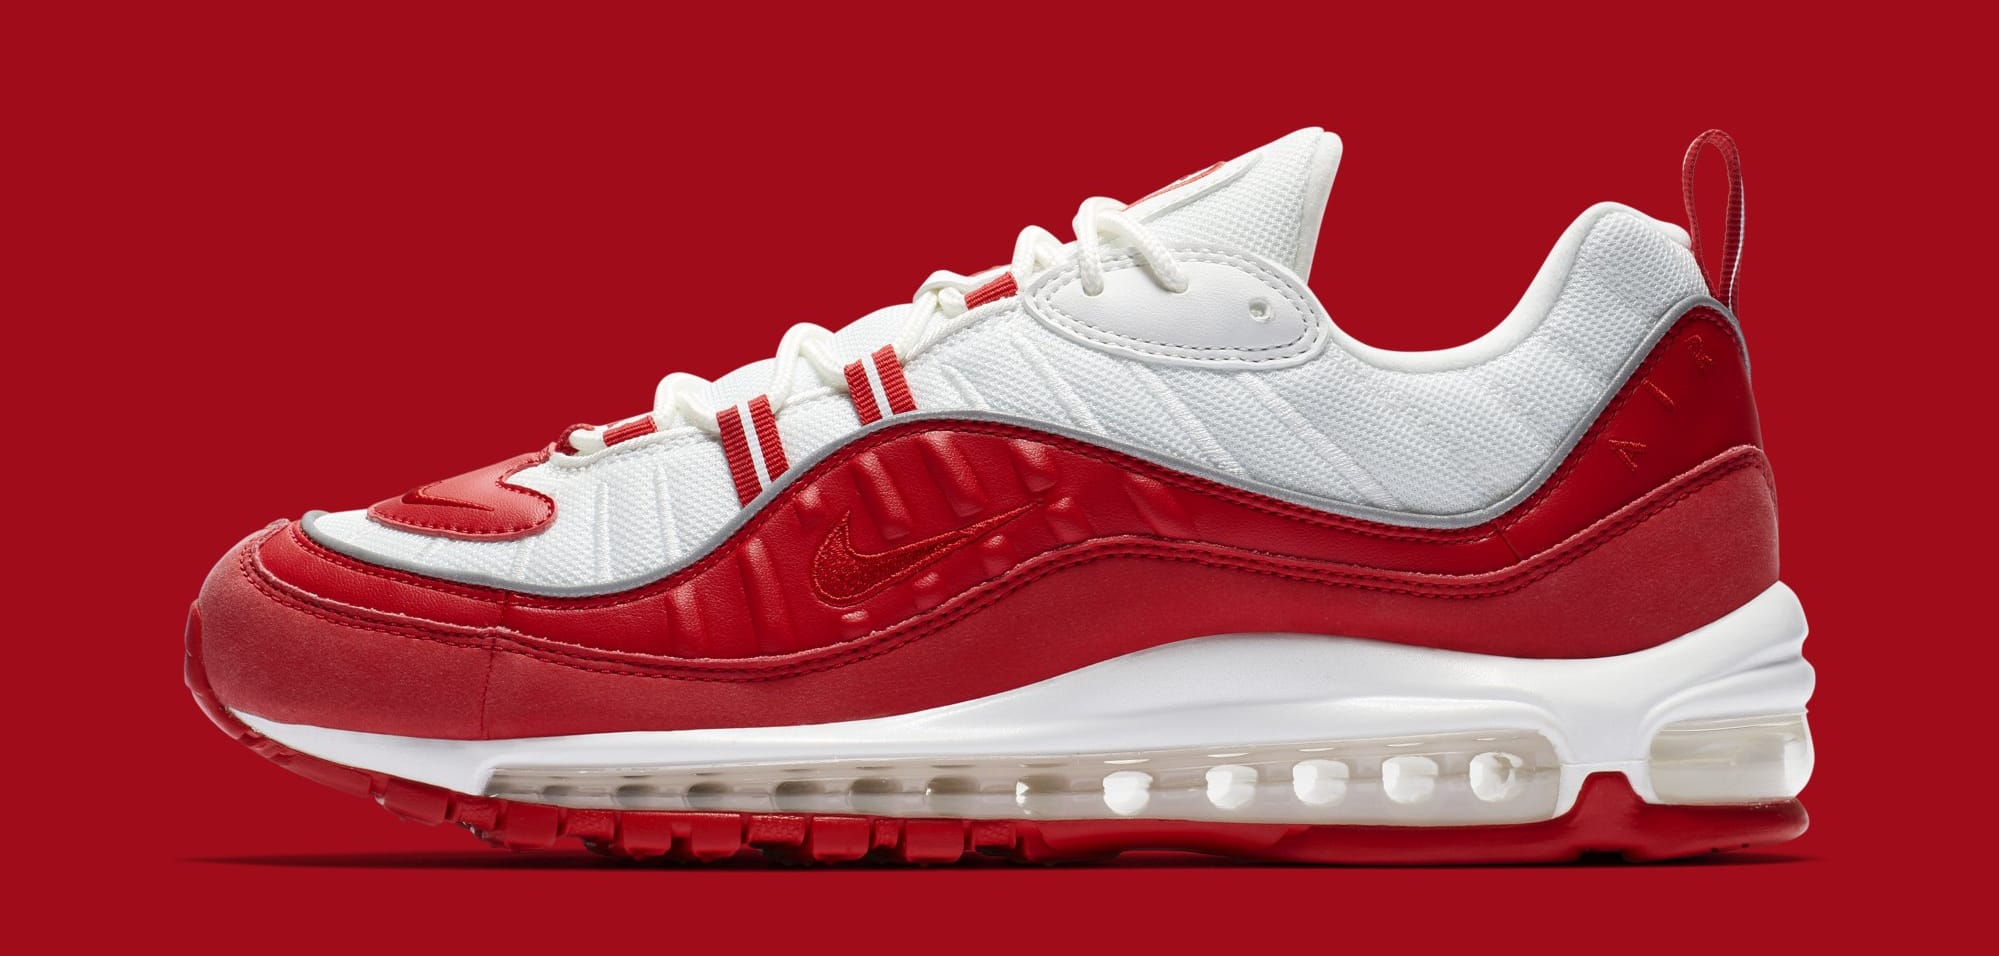 Nike Air Max 98 'University Red' 640744 602 Release Date